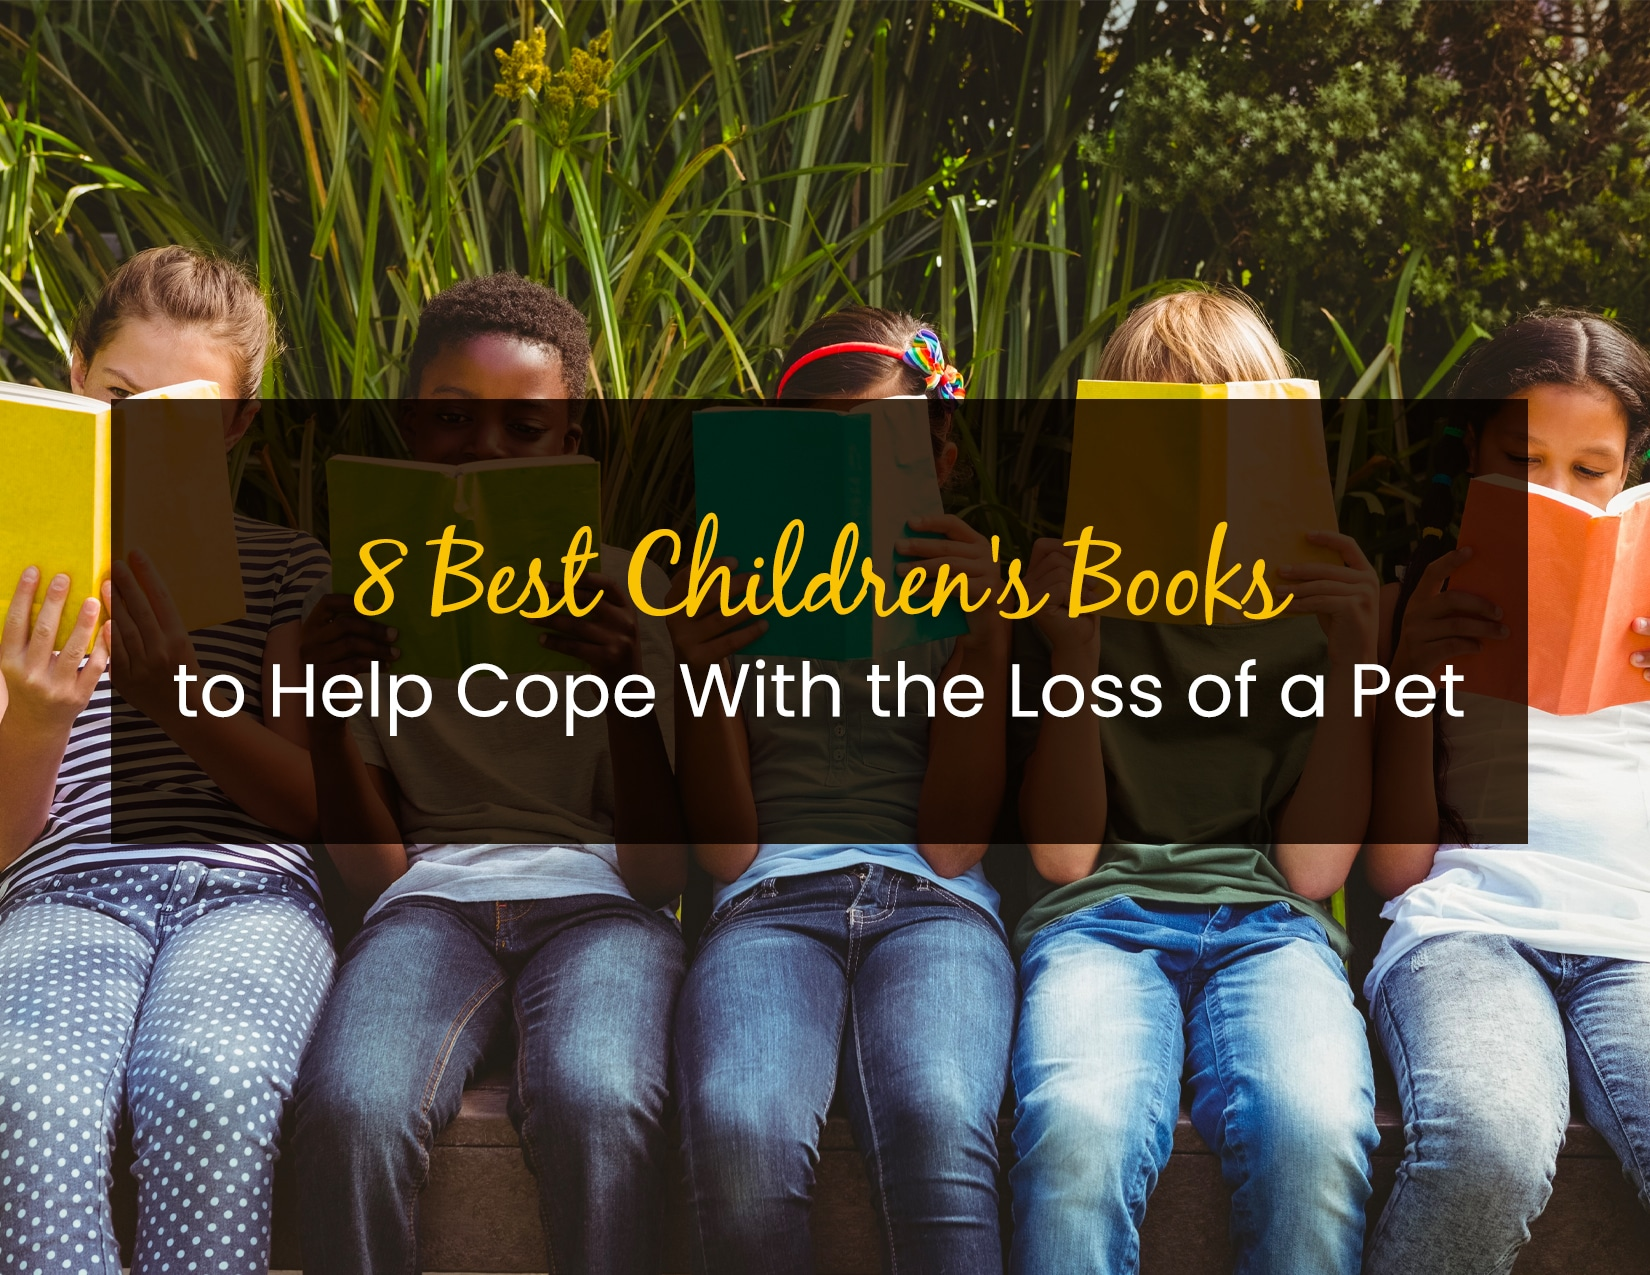 8 Best Children's Books to Help Cope With the Loss of a Pet - WP